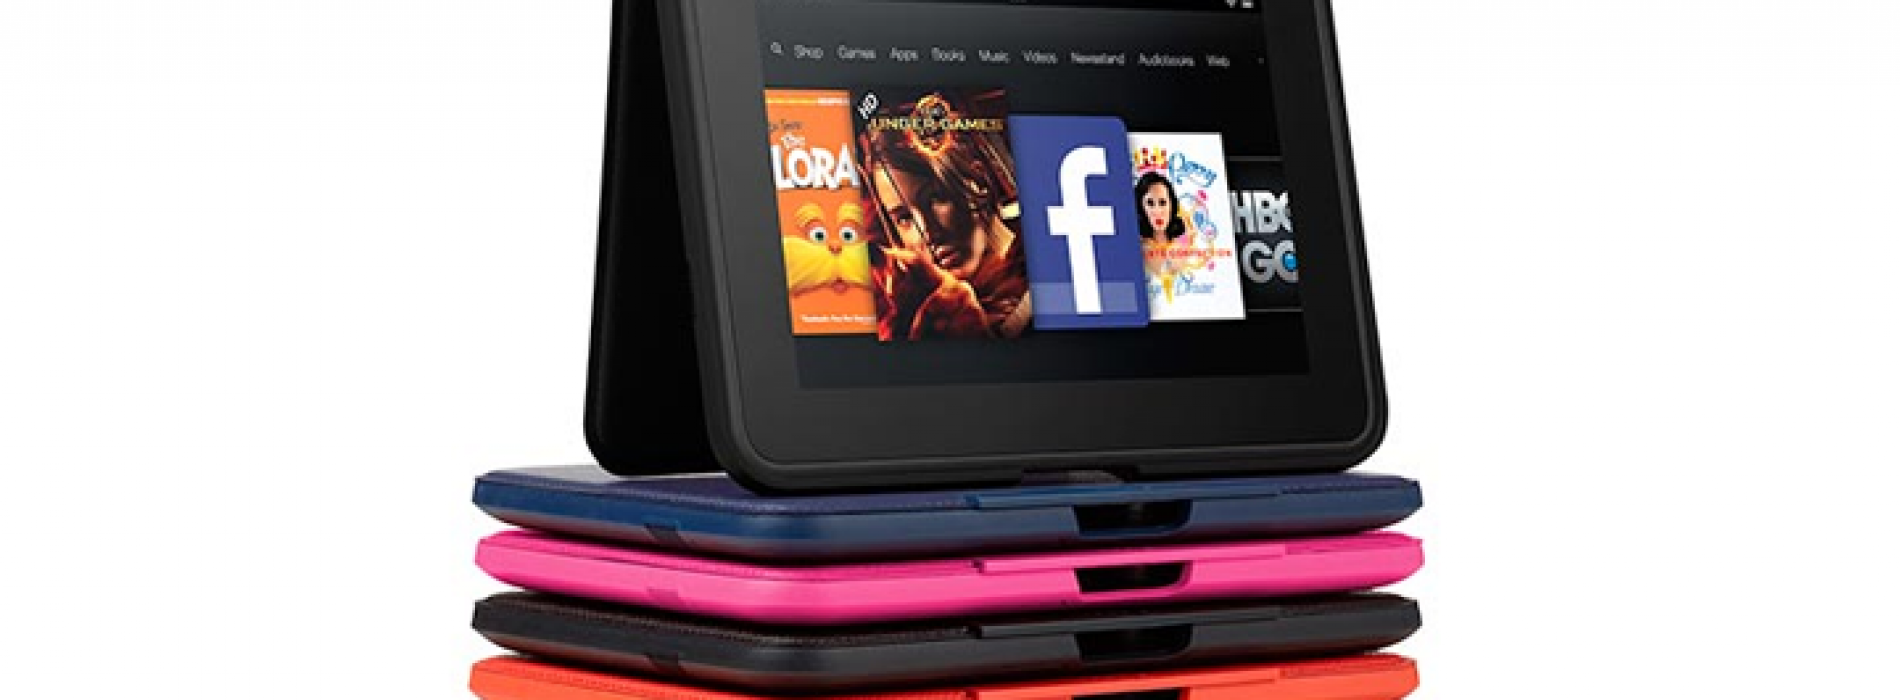 Amazon introduces all-you-can-eat Kindle FreeTime Unlimited